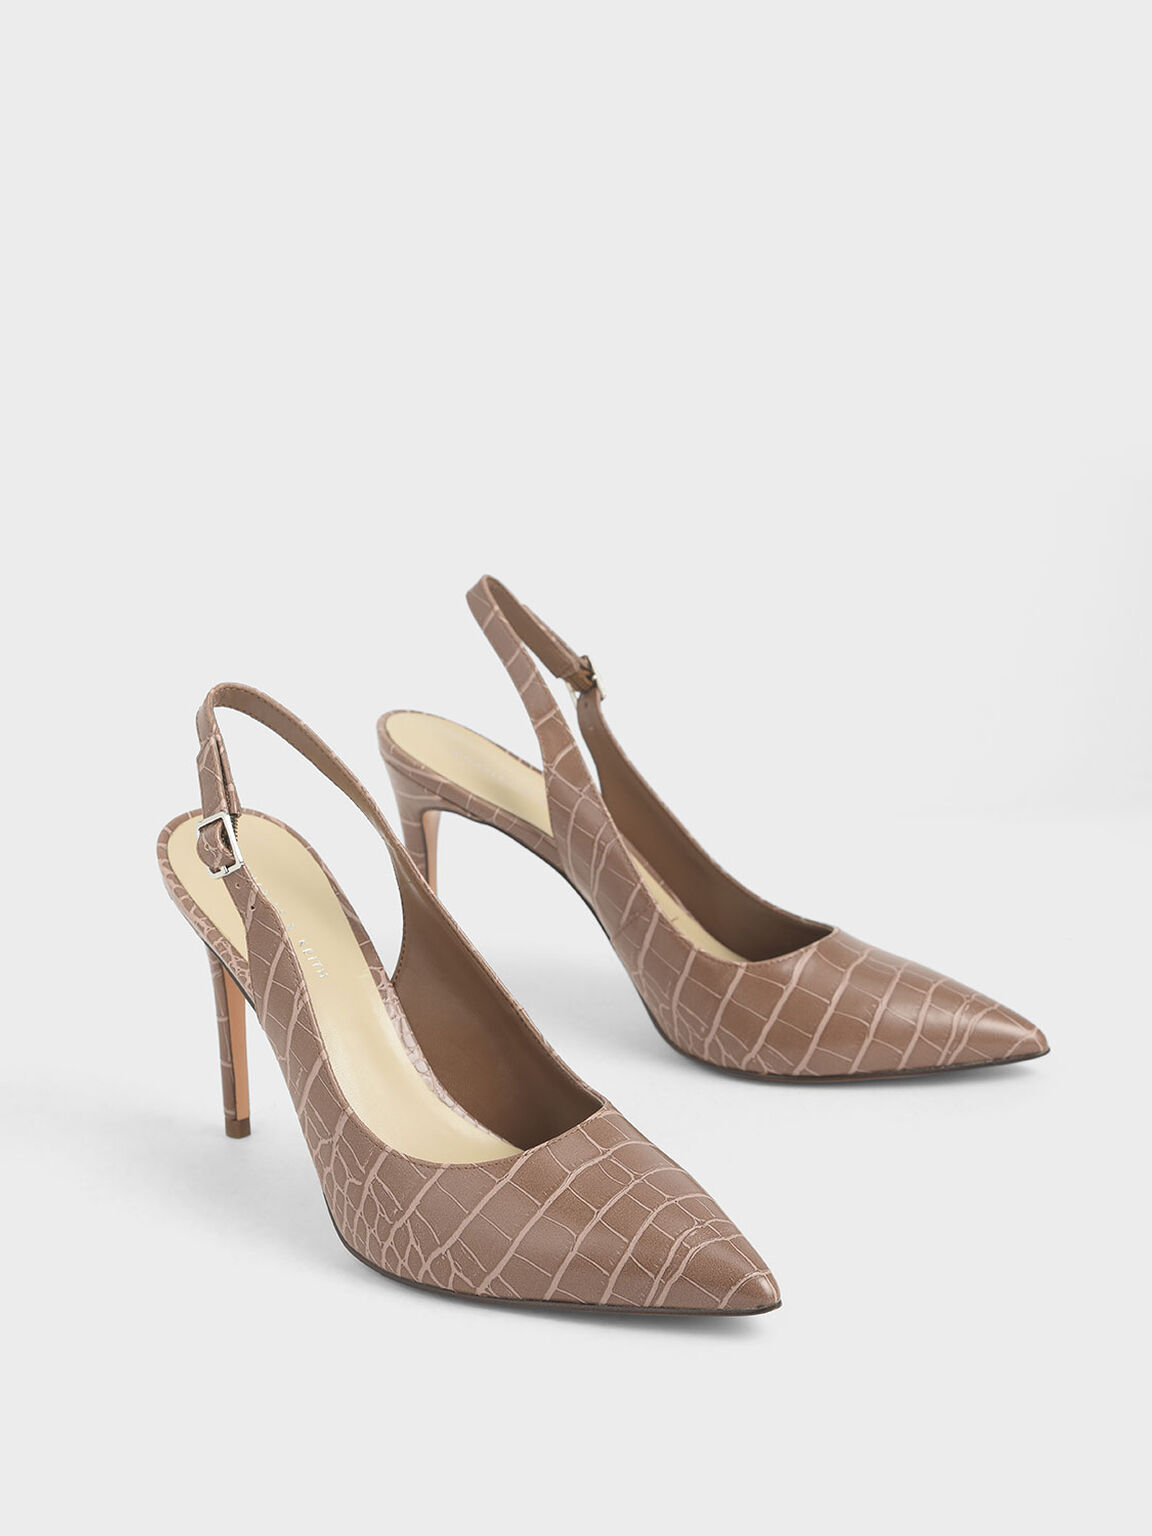 Croc-Effect Stiletto Slingback Pumps, Brown, hi-res